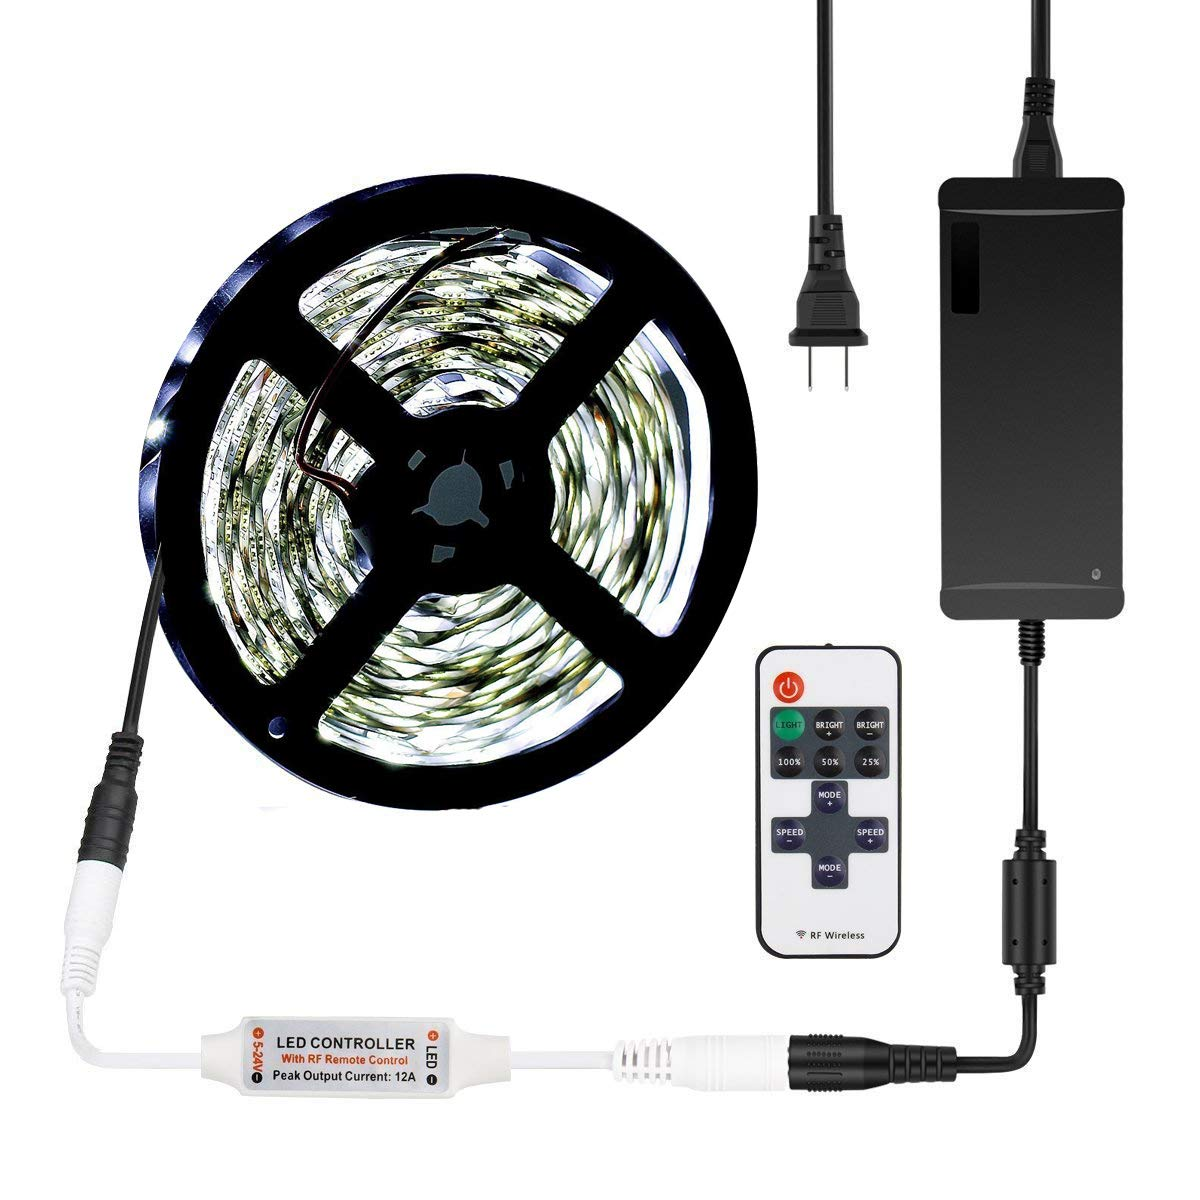 SUEPRNIGHT Cool White LED Strip Light Non-Waterproof, 16.4ft 300leds Rope Lighting with 12V 5A Power Adapter and RF Remote Controller for Bedroom,Car, Party Decoration by SUPERNIGHT